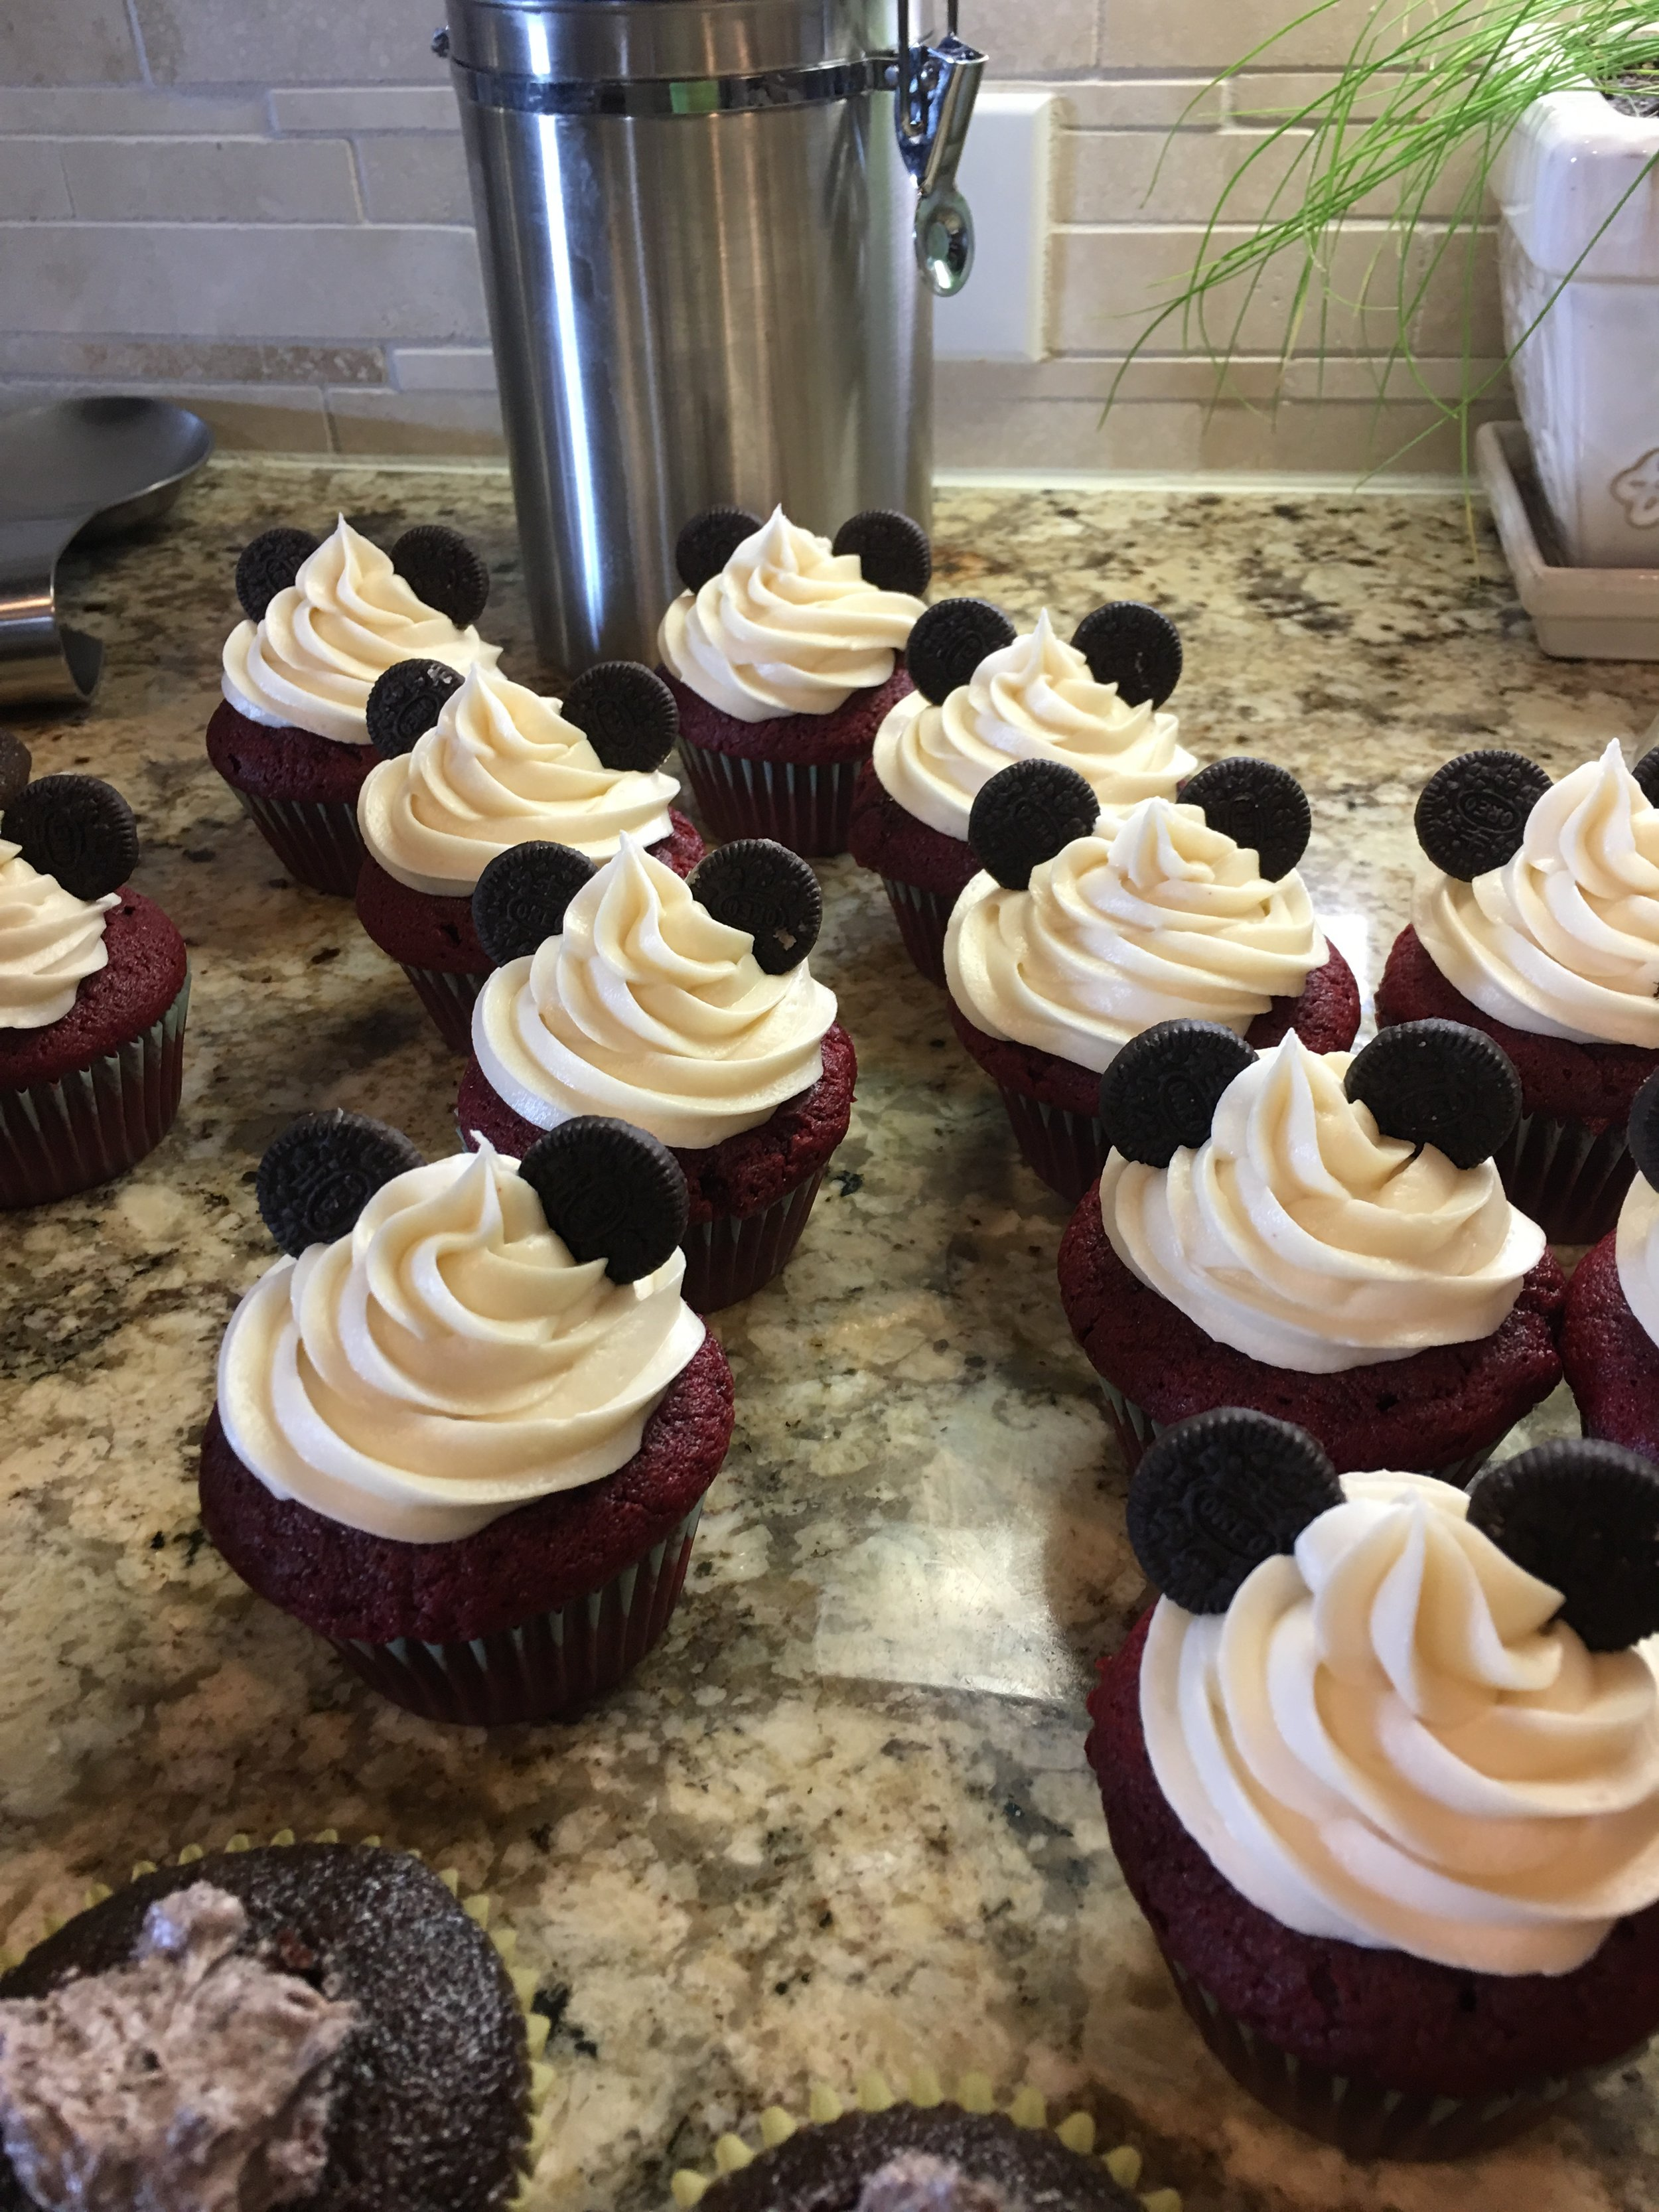 baking and decorating red velvet cupcakes with Oreos